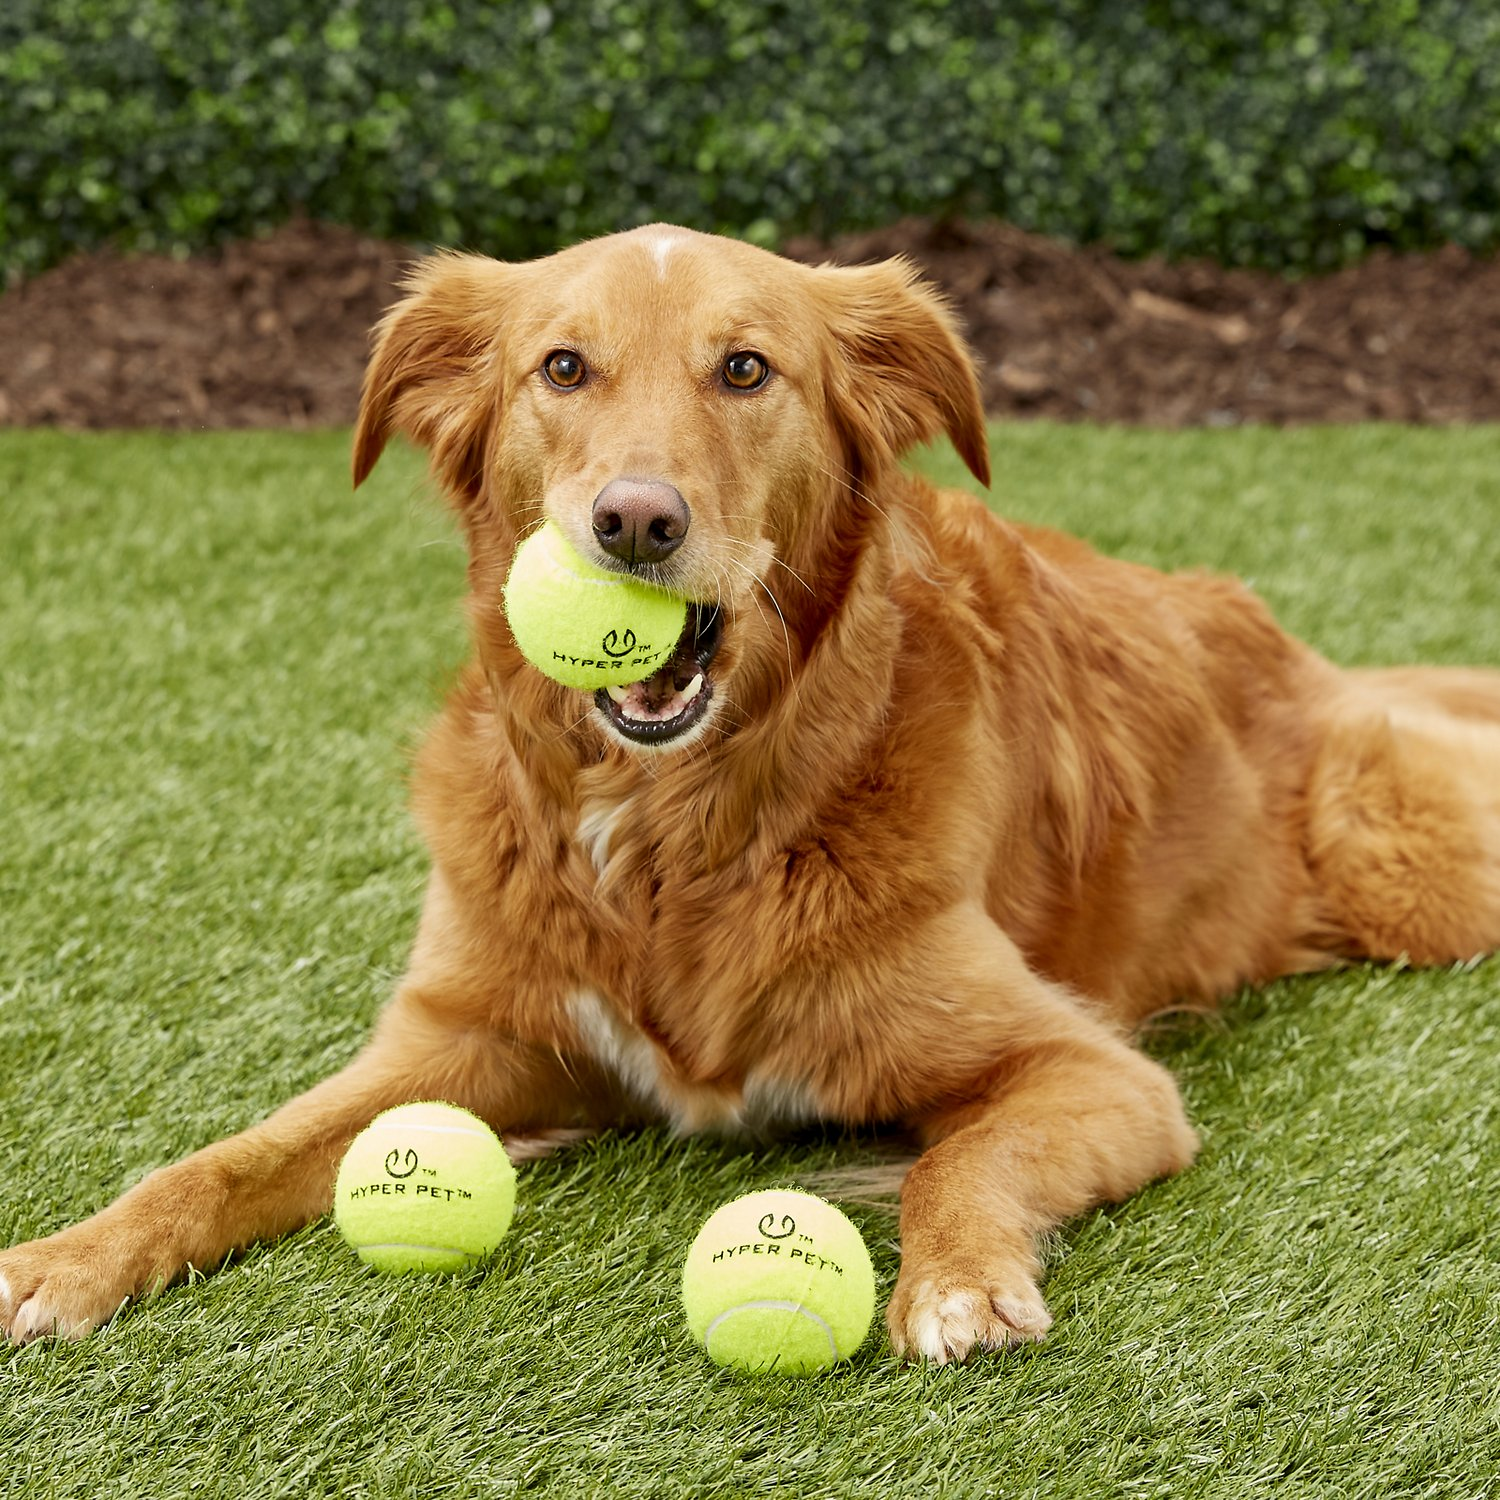 Hyper Pet 4 Pack of Balls for Dogs, Green, Regular - Chewy.com